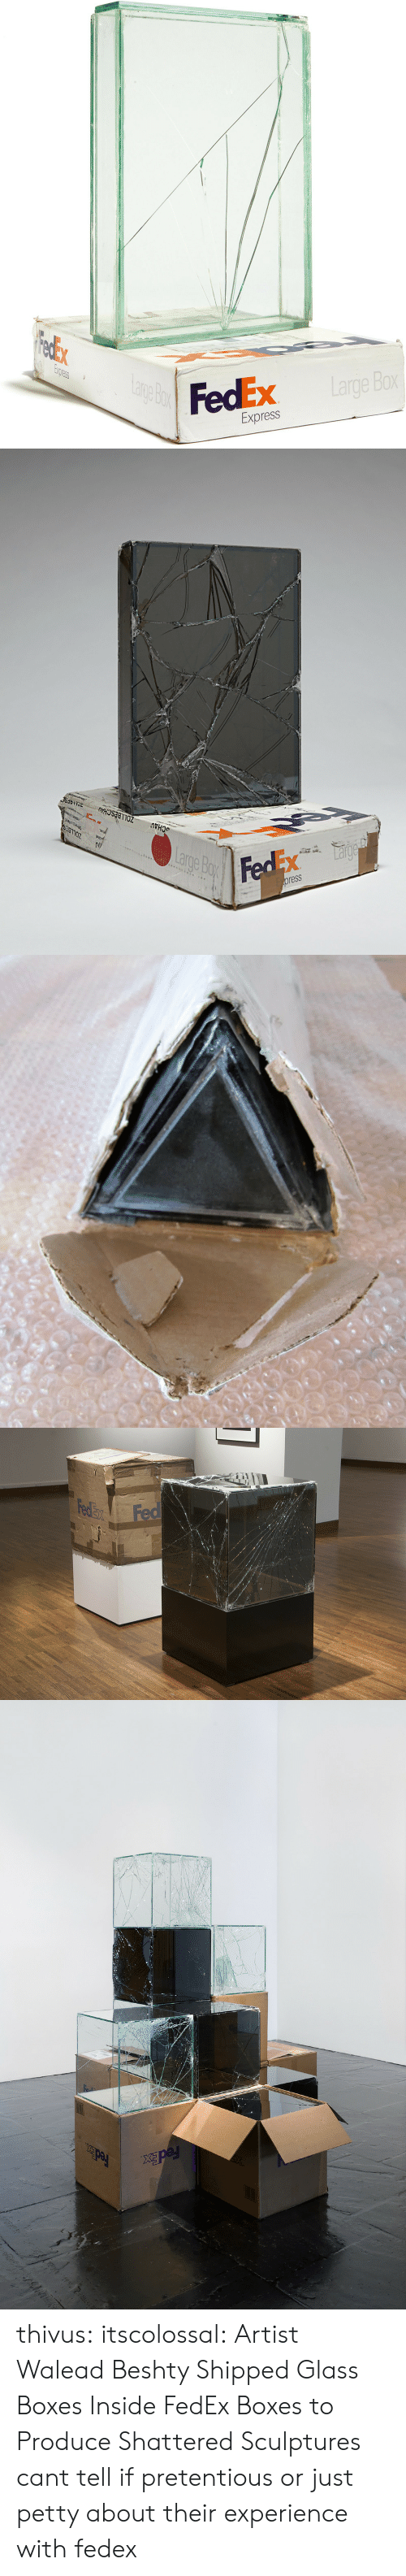 Petty, Pretentious, and Target: FedEx  0  Express   OLLB  ssal  shet  the  CHAV ZOLLBESCHAU  ARP thivus: itscolossal: Artist Walead Beshty Shipped Glass Boxes Inside FedEx Boxes to Produce Shattered Sculptures cant tell if pretentious or just petty about their experience with fedex